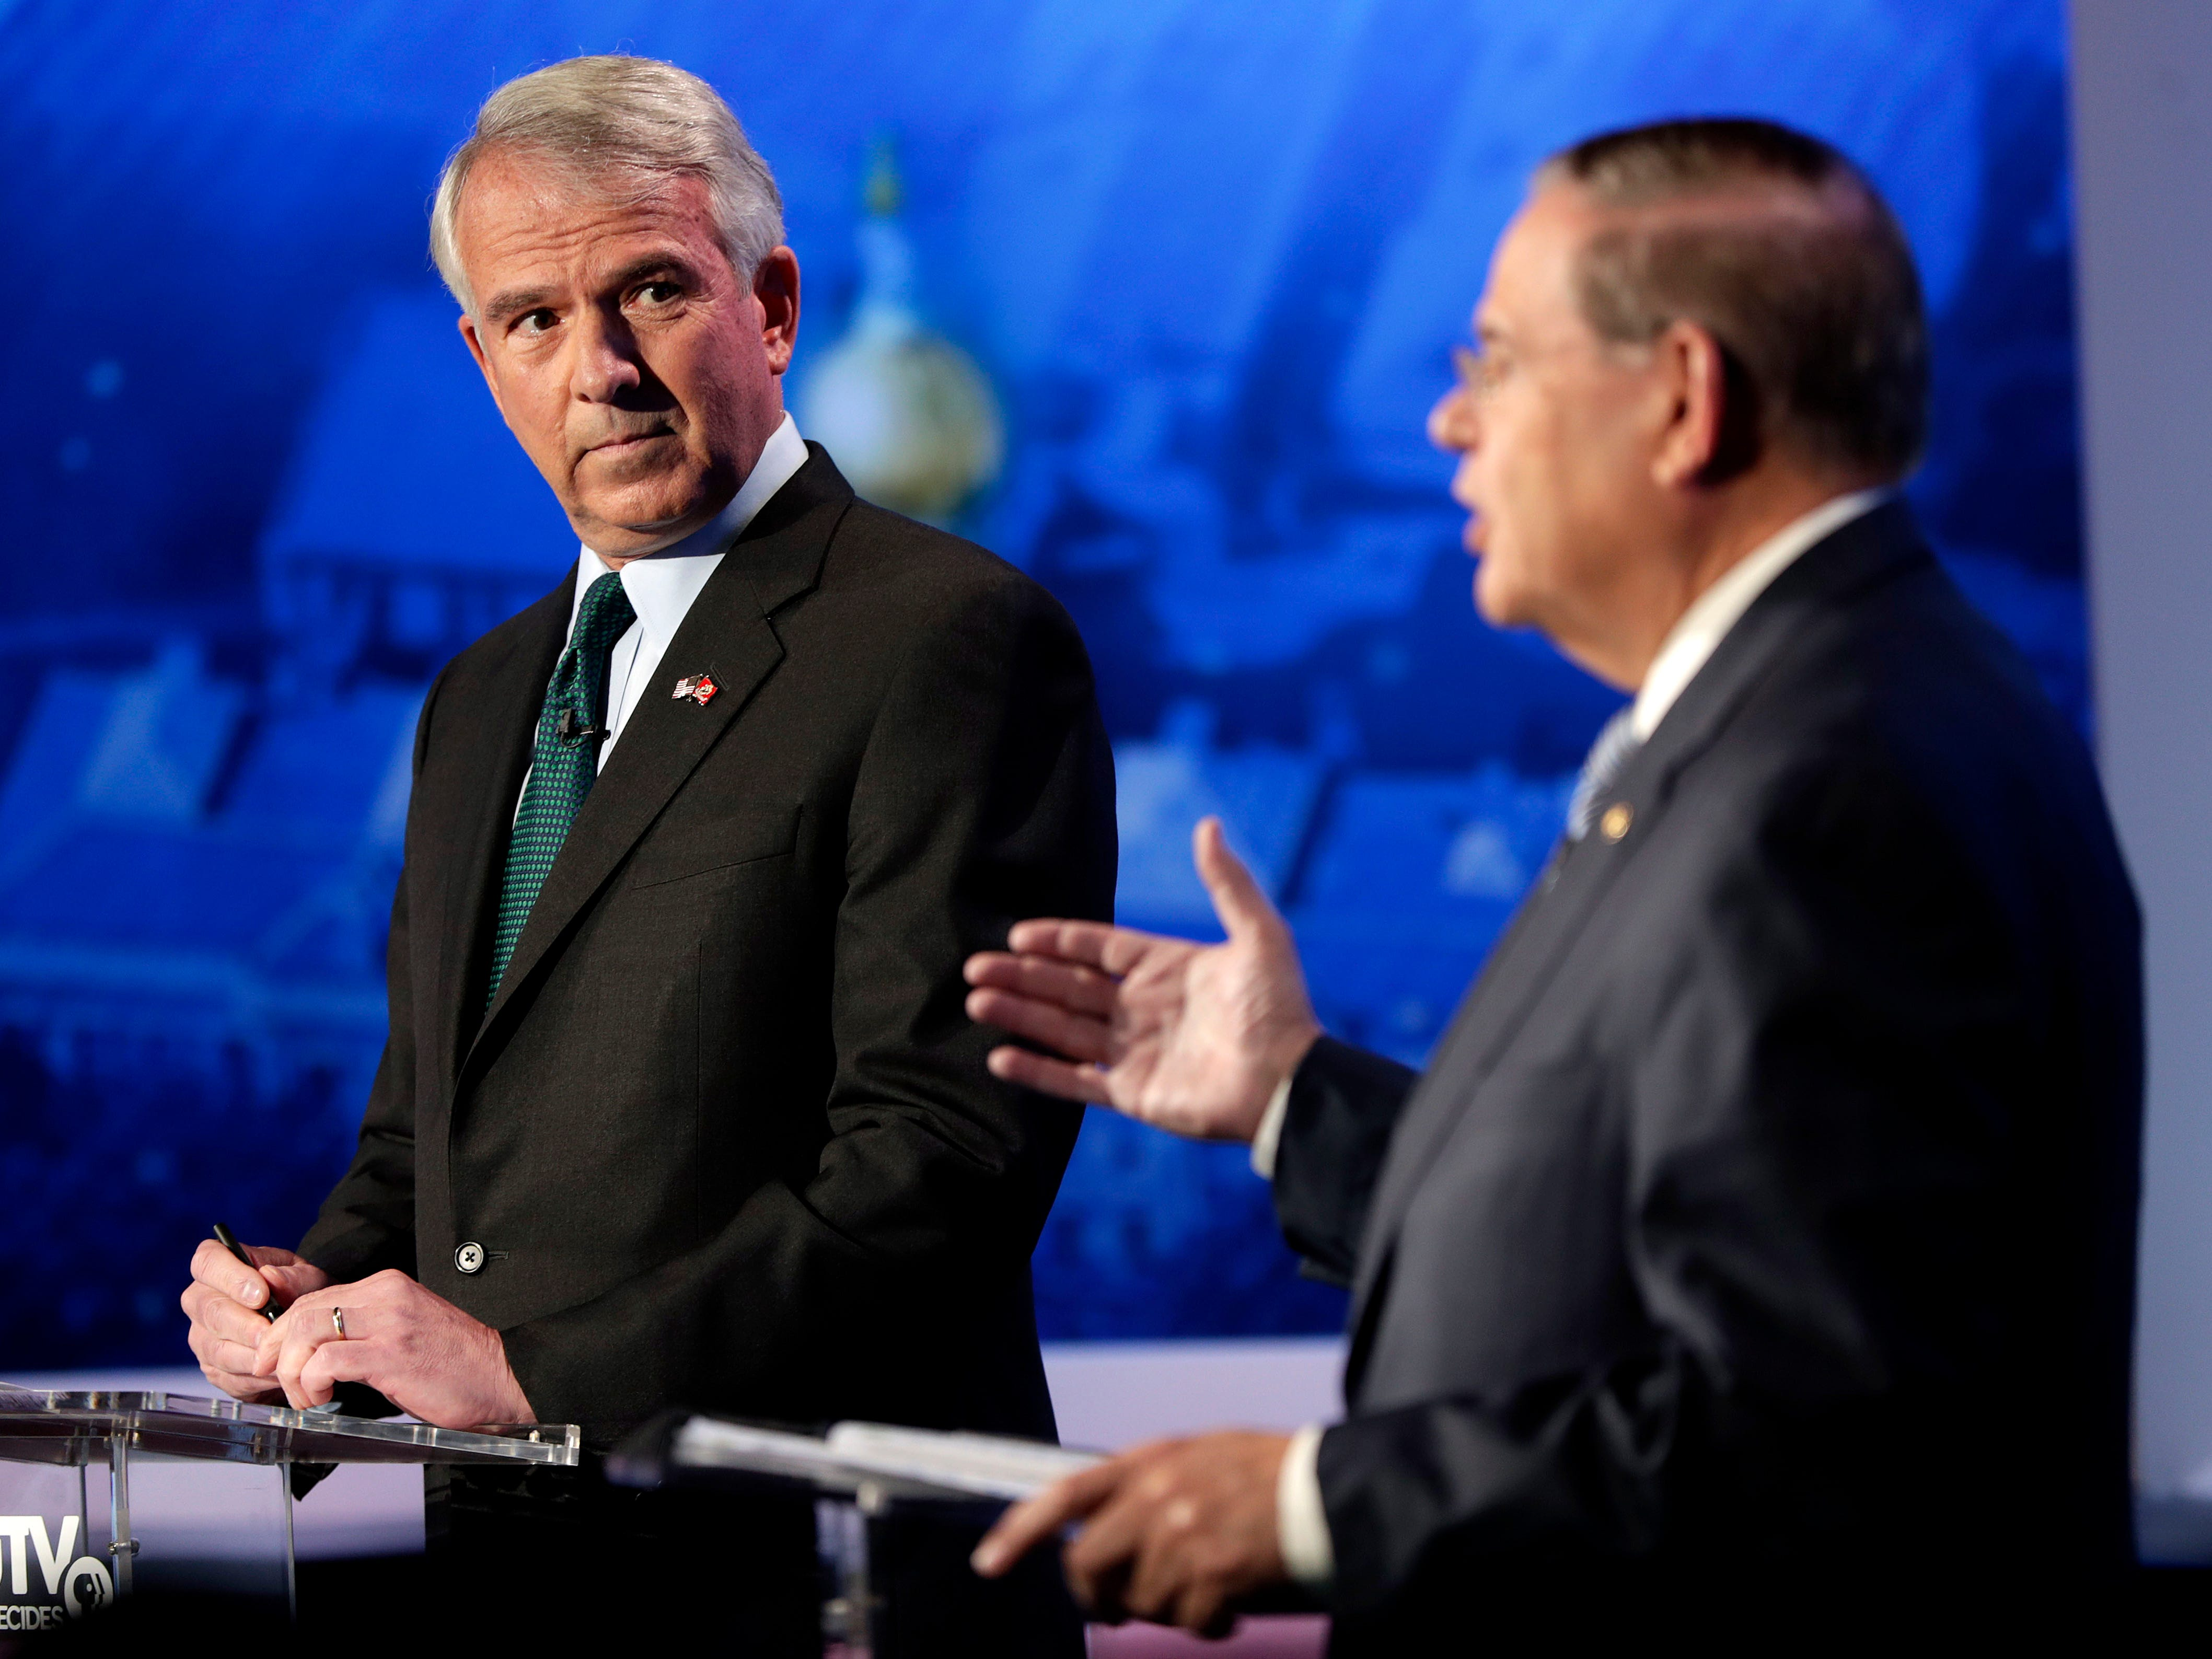 Bob Hugin, left, the Republican candidate for the U.S. Senate race in New Jersey, looks on as New Jersey Sen. Bob Menendez, right, the Democrat candidate, answers a question during a debate, Wednesday, Oct. 24, 2018, in Newark, N.J.